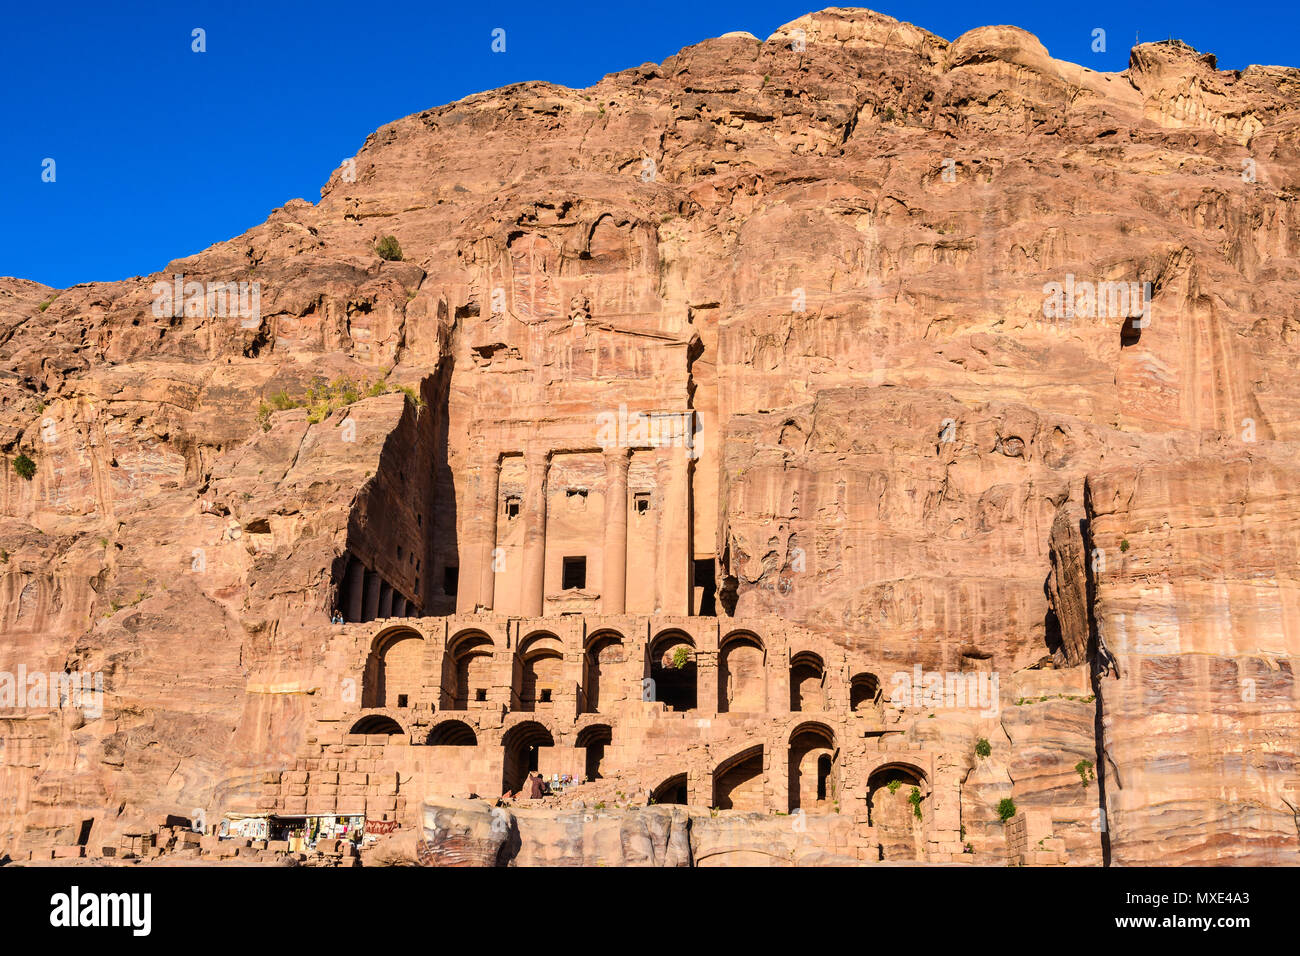 Royal Tombs in the Lost City of Petra, Jordan Stock Photo